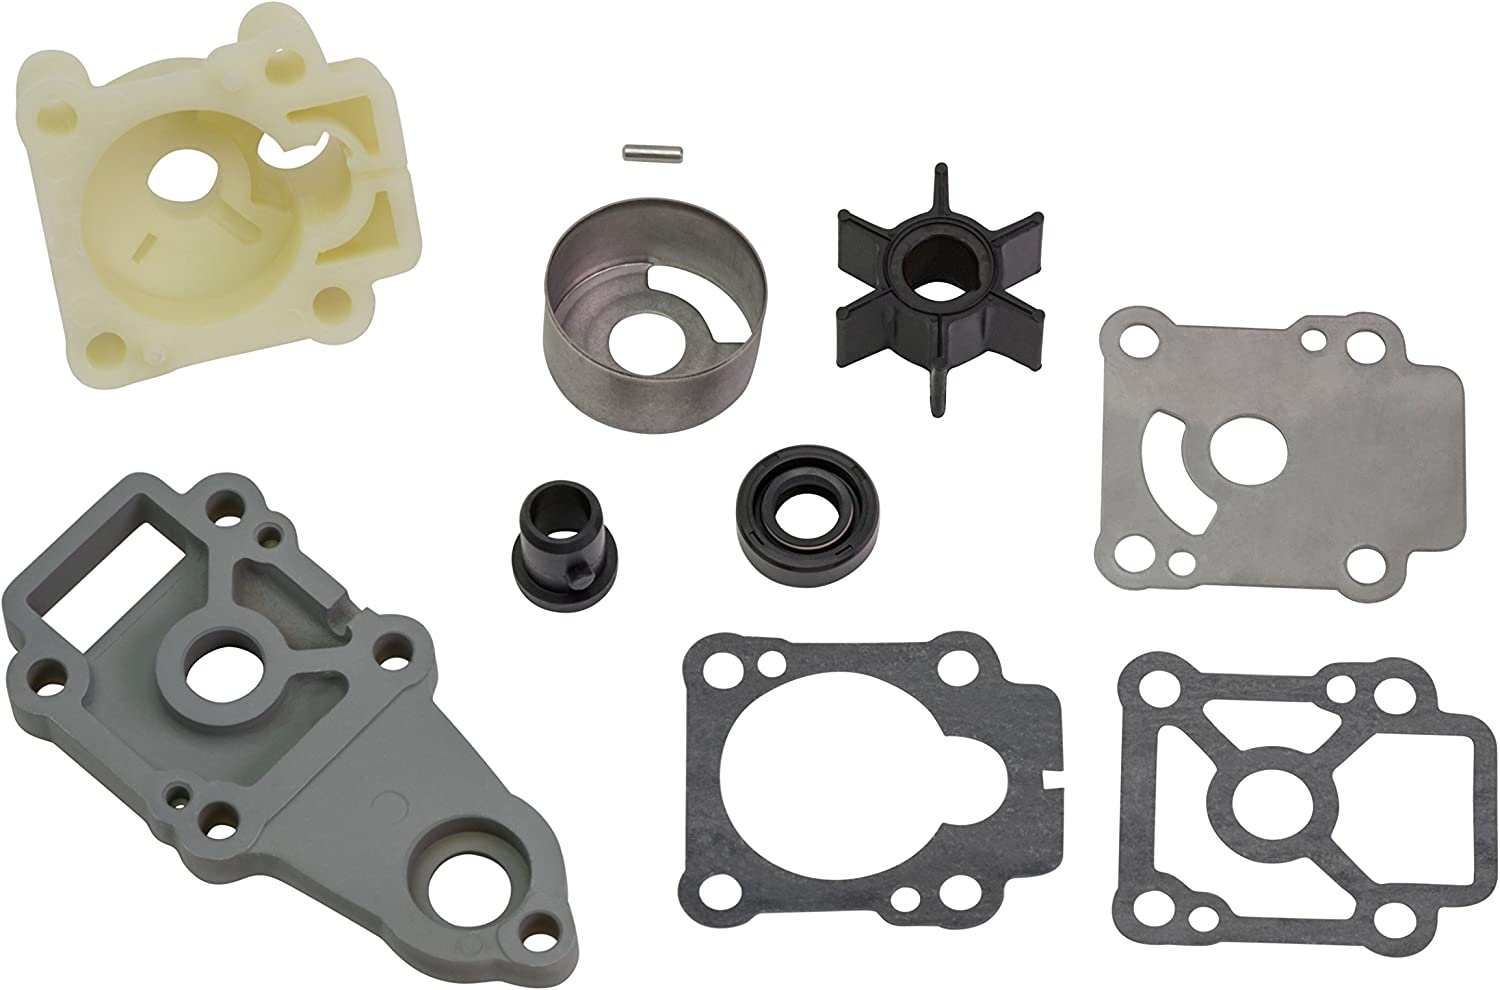 Quicksilver 803750A03 Replacement Water Pump Kit - Mercury and Mariner 8 through 9.9 Horsepower 4-stroke Outboards